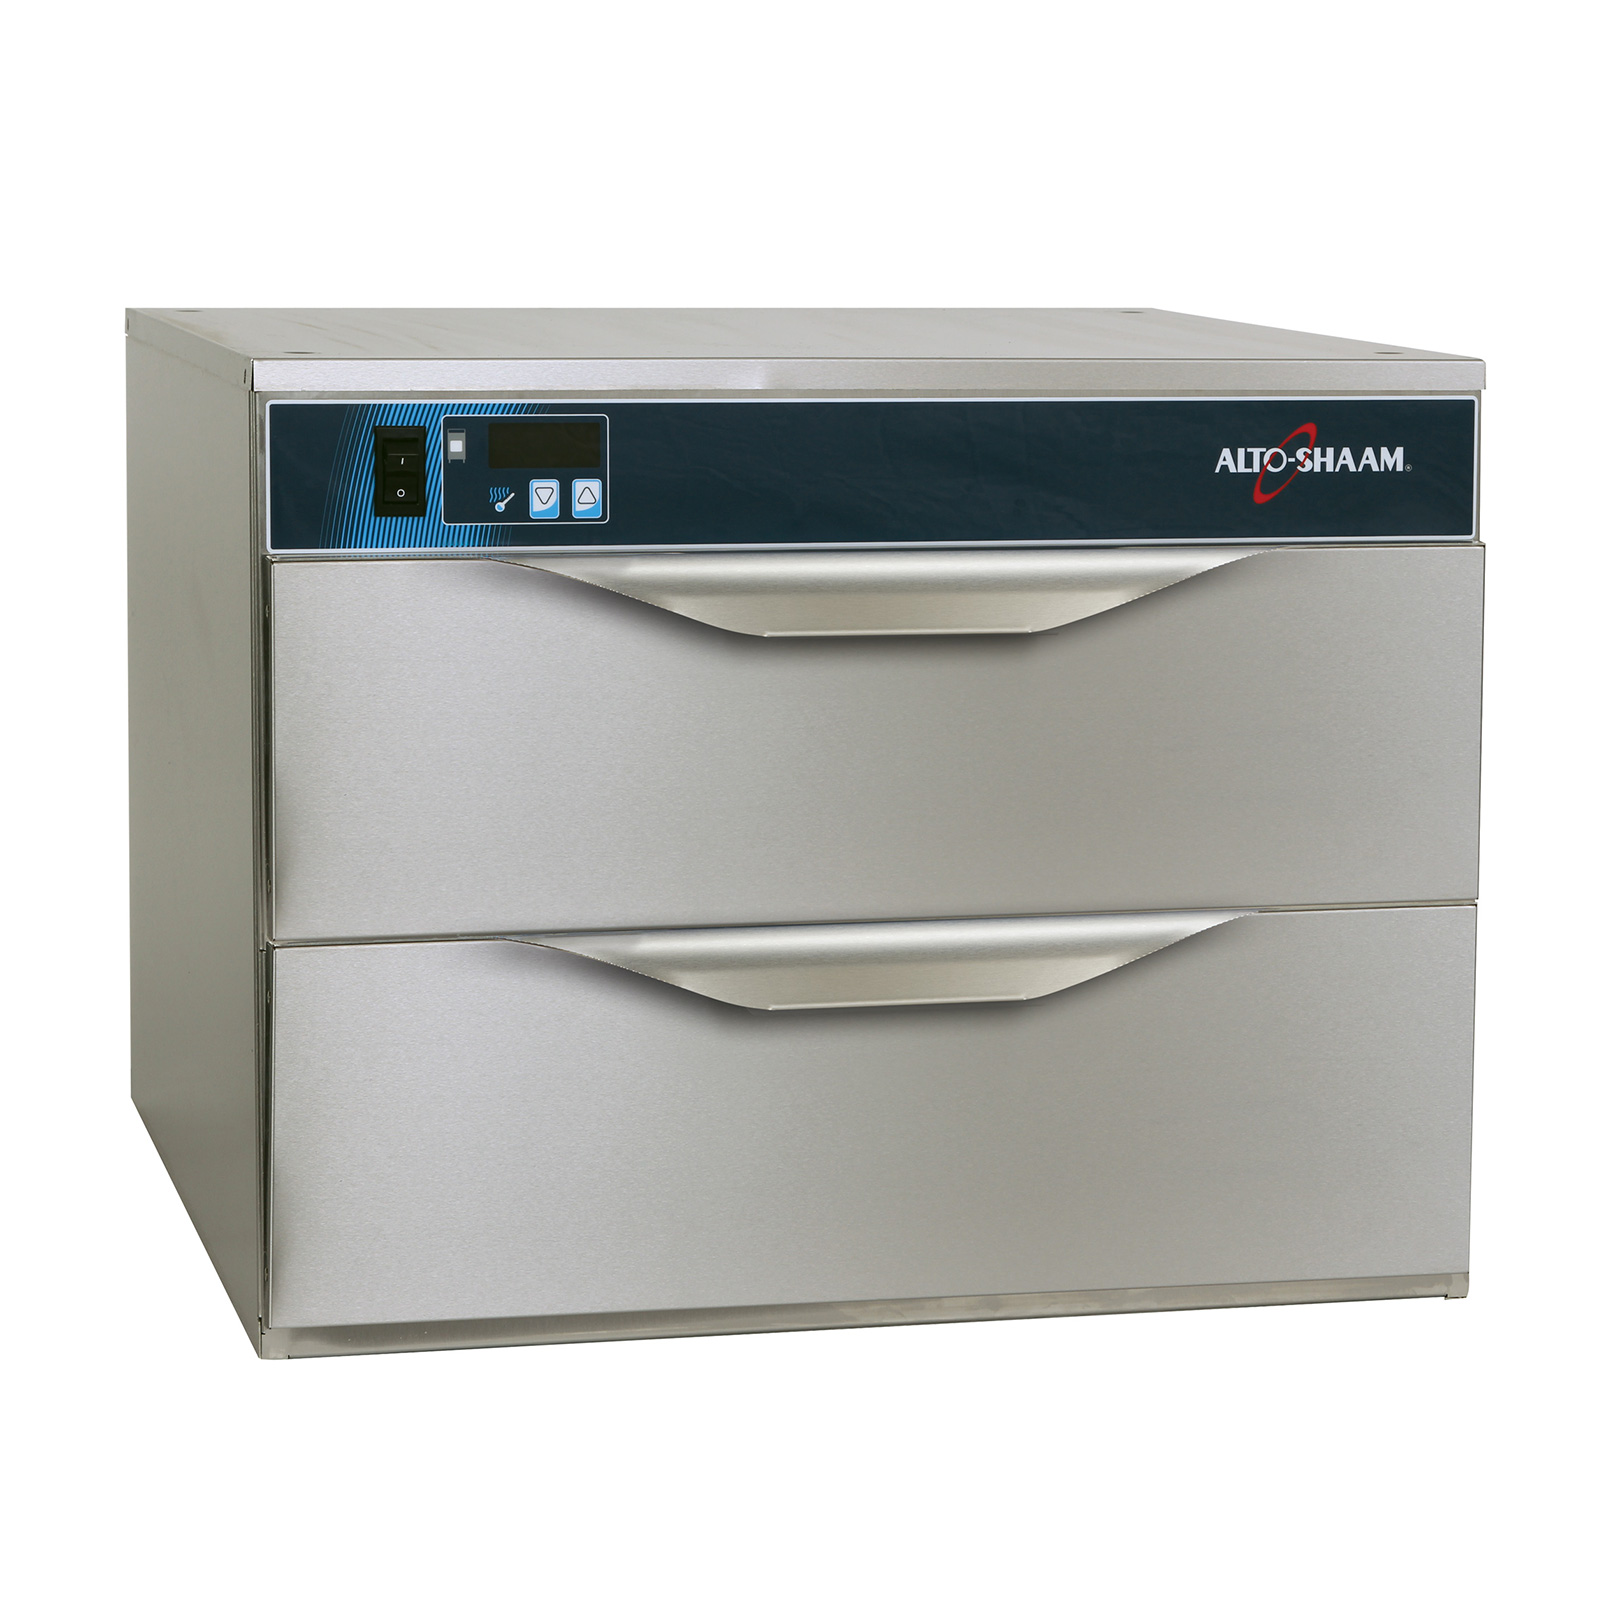 Alto-Shaam 500-2D-QS warming drawer, free standing